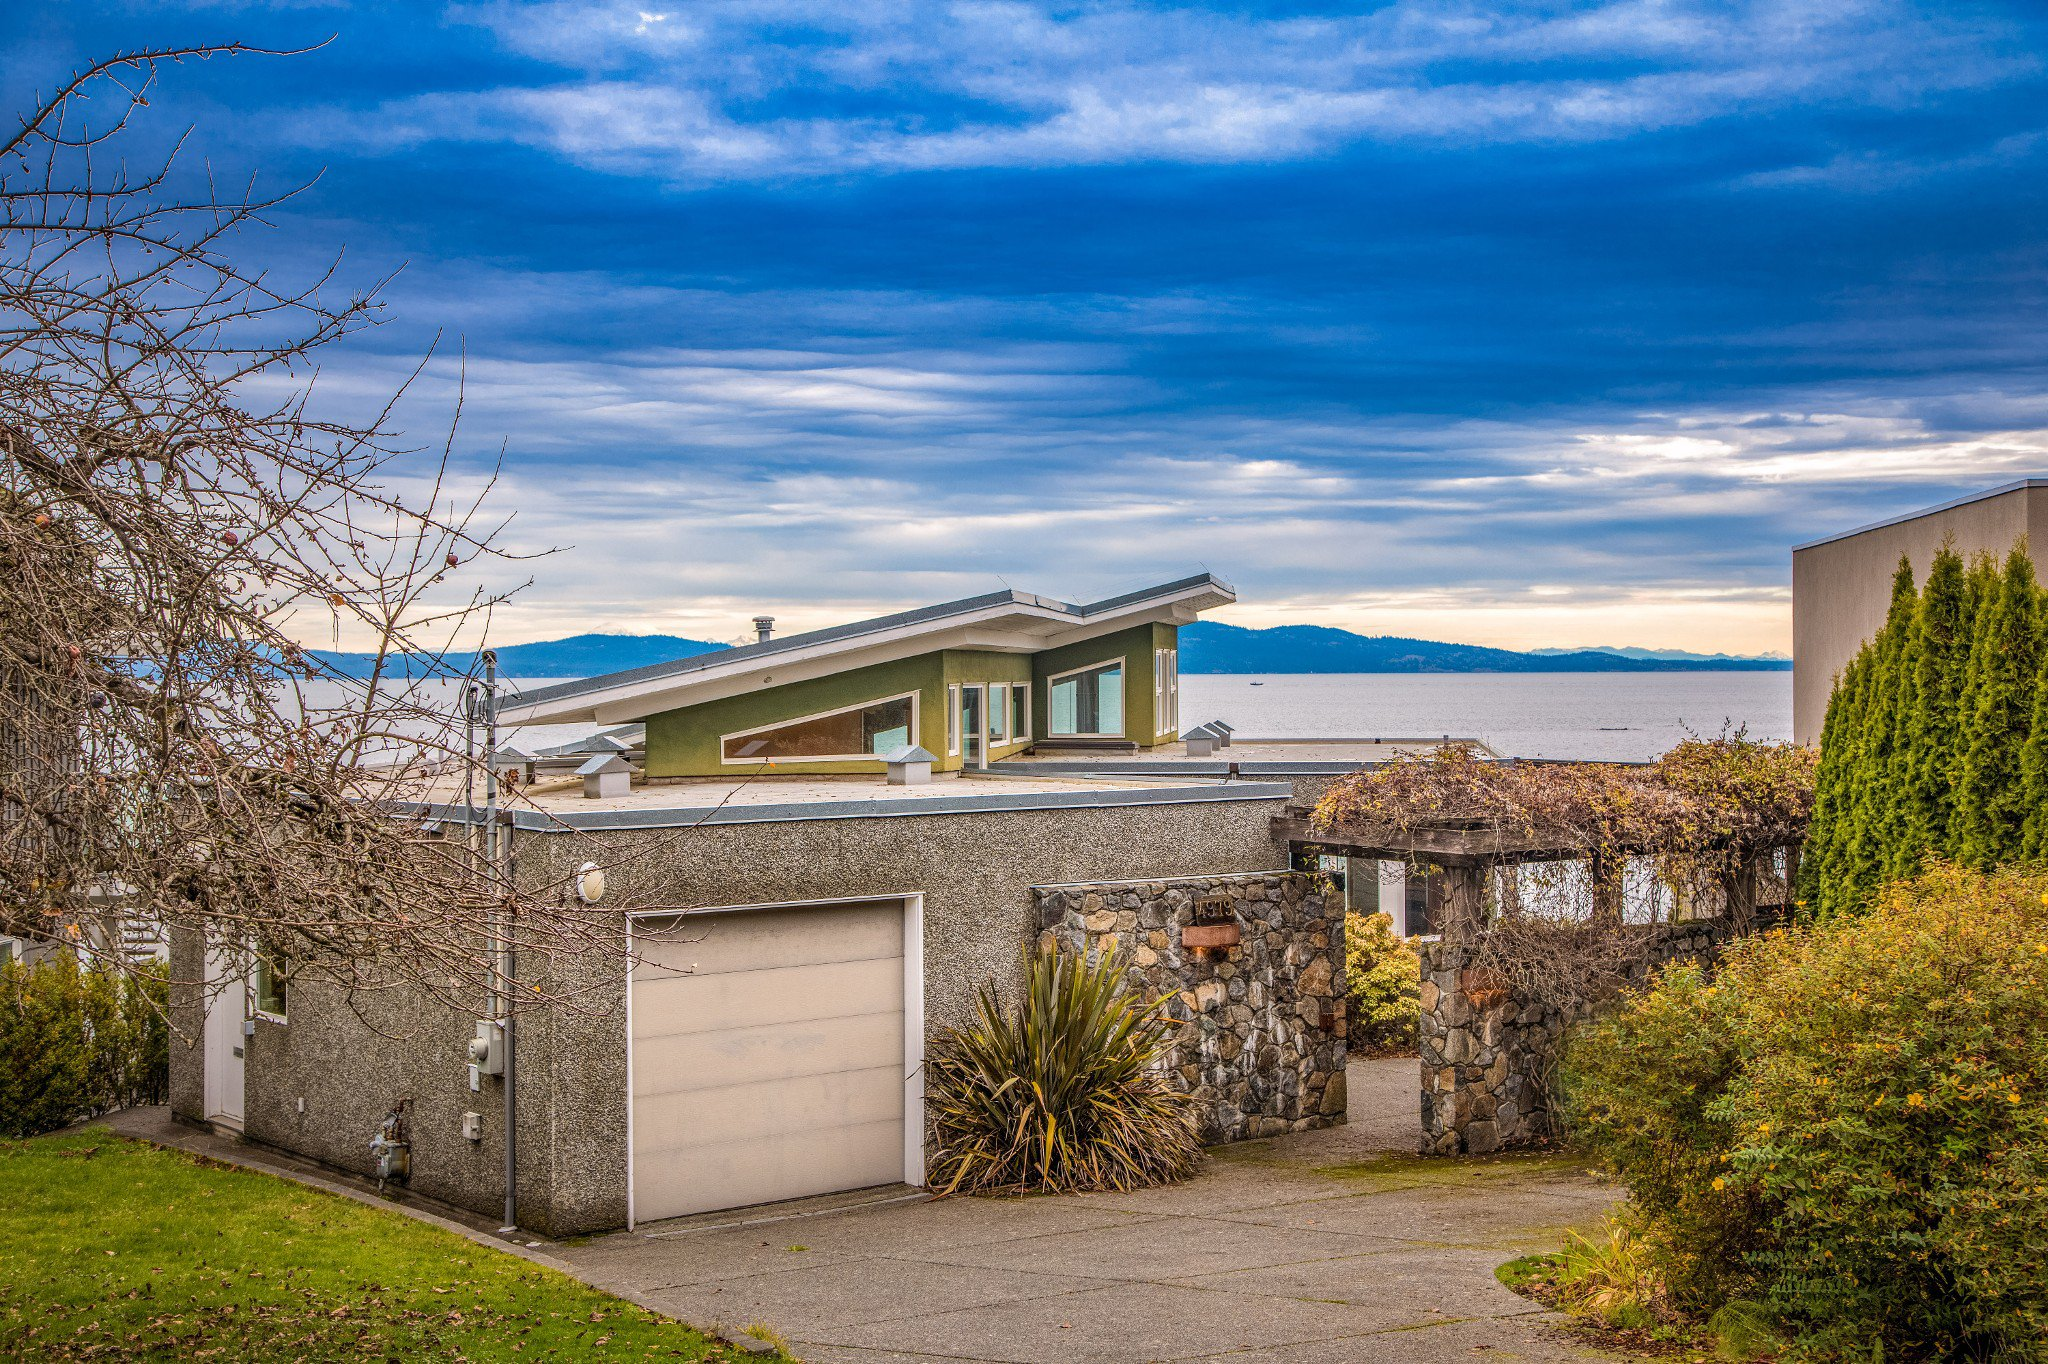 Main Photo: 4979 Cordova Bay Rd in VICTORIA: SE Cordova Bay House for sale (Saanich East)  : MLS®# 826212